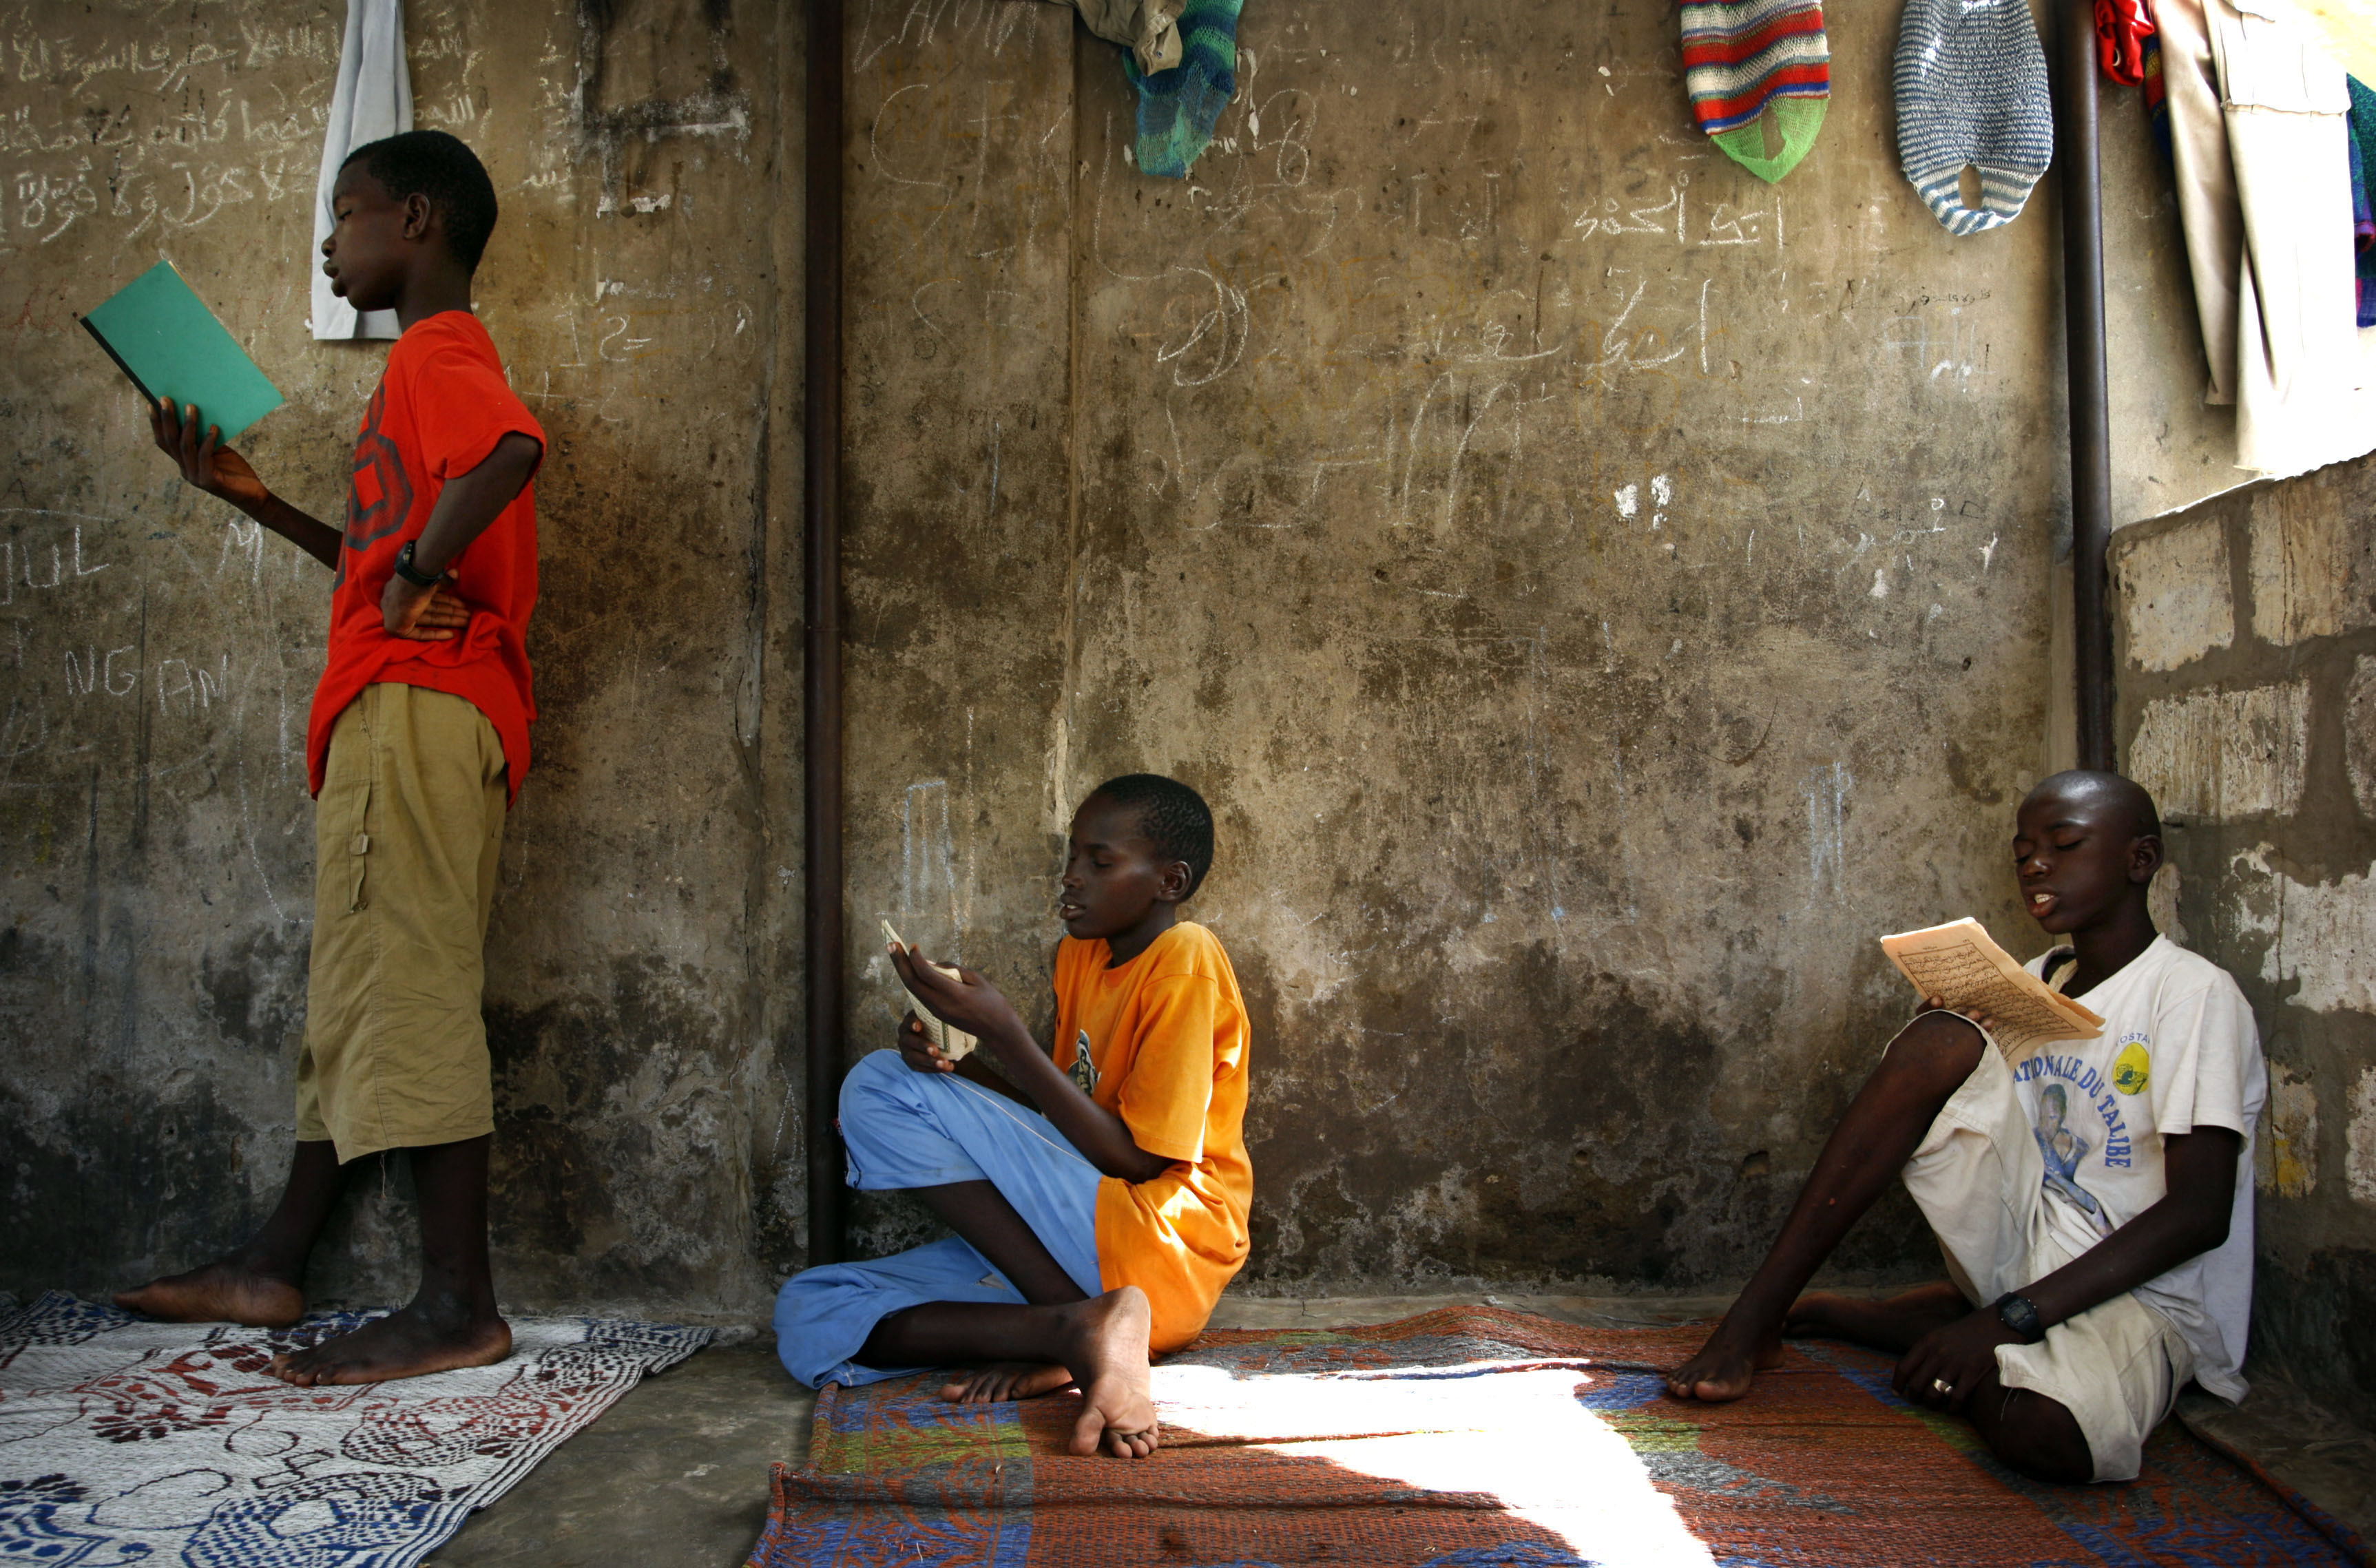 Senegalese Talibes, or Islamic students, recite verses from the Koran at a Dara or Koranic school in Thies, 70 kilometers (50 miles) east of the capital Dakar, September 24, 2007. Talibes beg on the streets collecting alms for a marabout, or religious leader, in return for food, accommodation and Koranic learning as part of Senegal's Mouride sect of Islam. REUTERS/Finbarr O'Reilly (SENEGAL) - GM1DWFOJKMAA